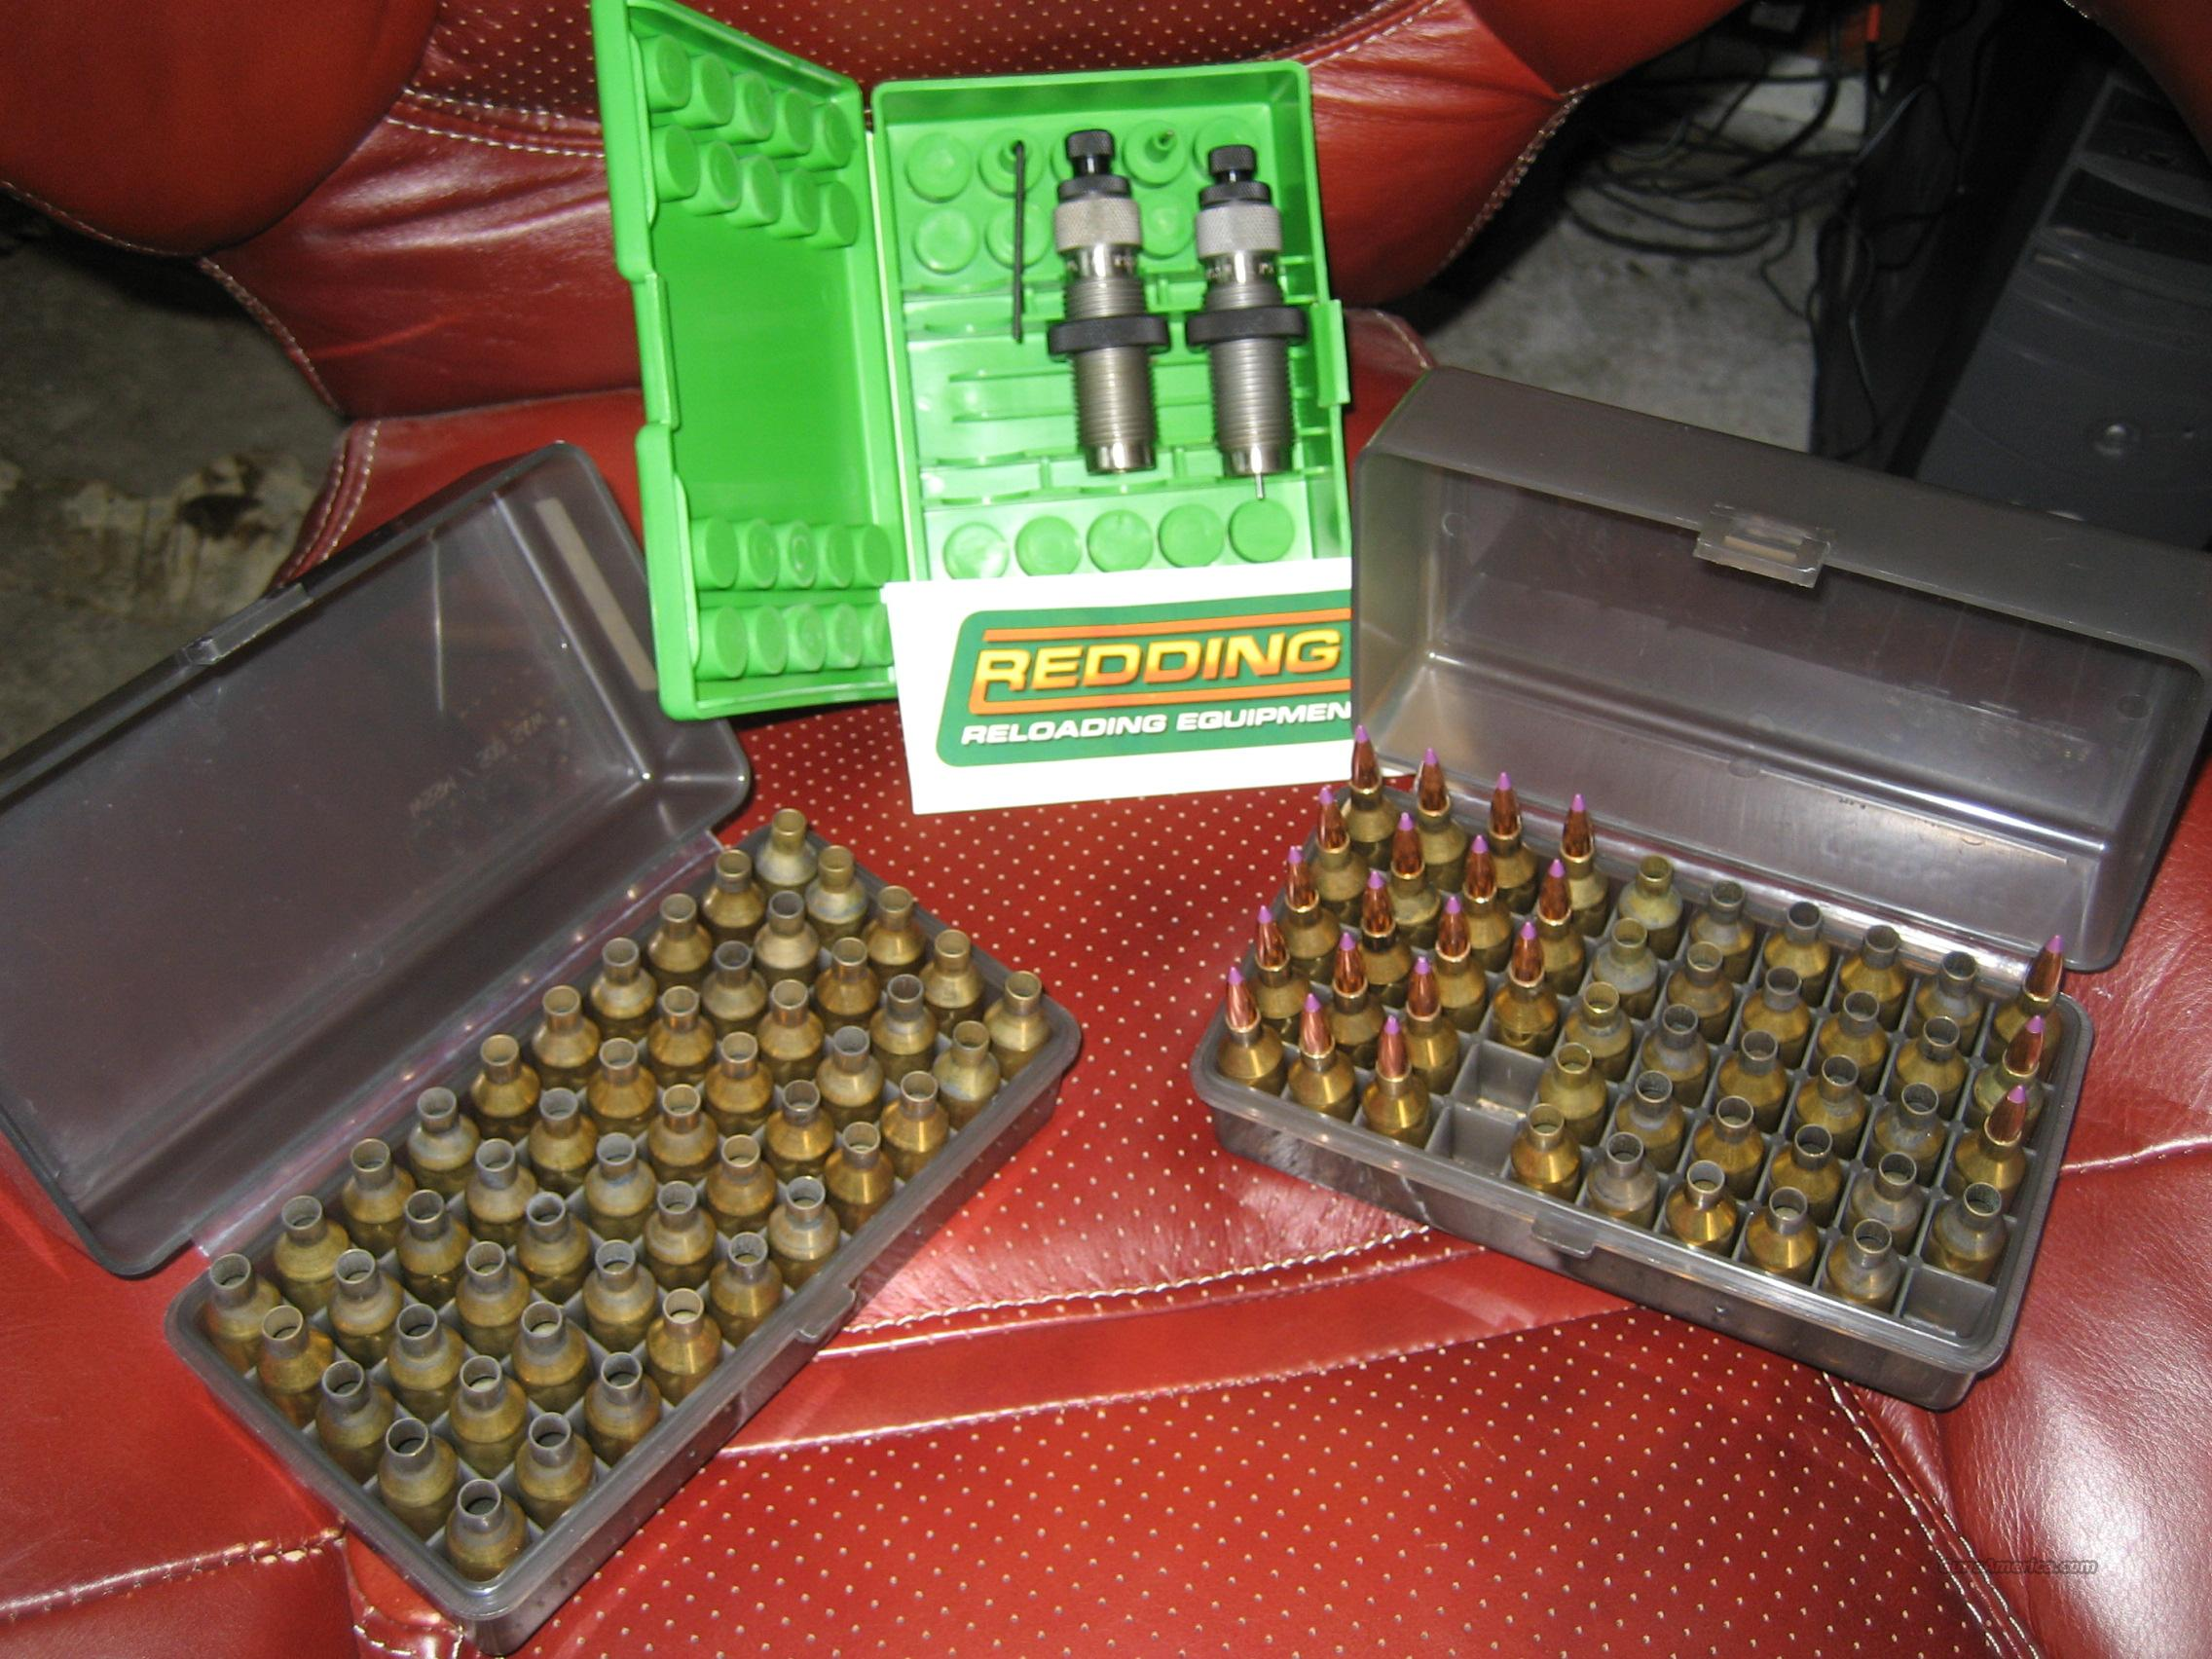 Redding 243 WSSM dies & Brass  Non-Guns > Reloading > Equipment > Metallic > Dies